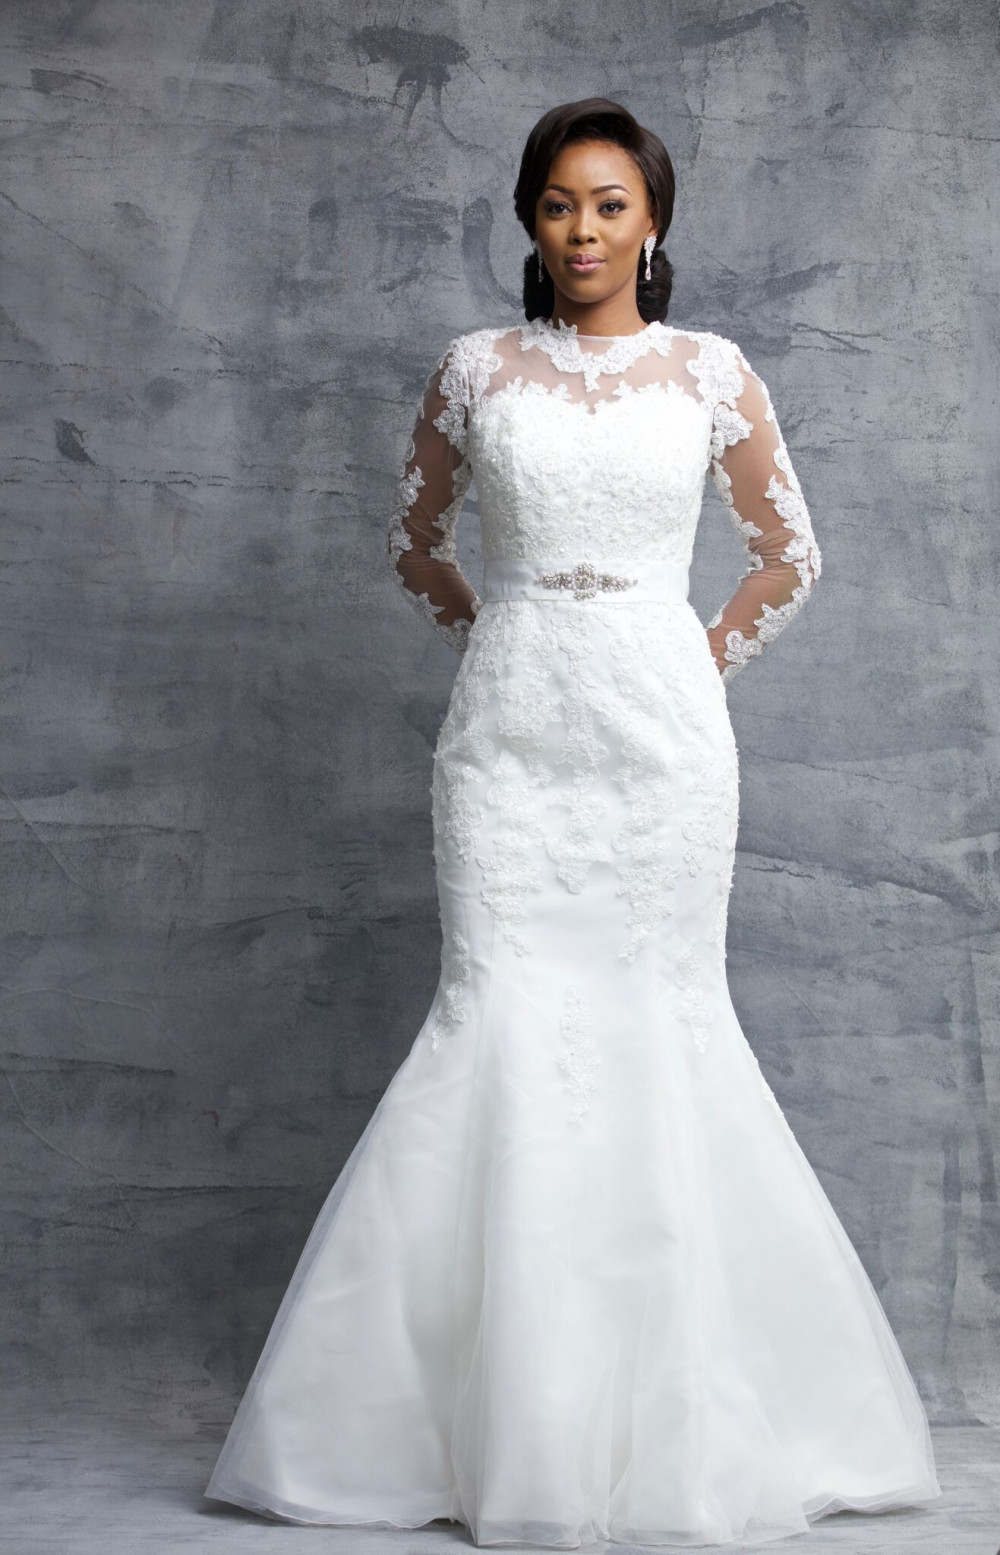 Hirut 2_Love Tims, I Do Weddings New Bridal Collection_2016_BellaNaija